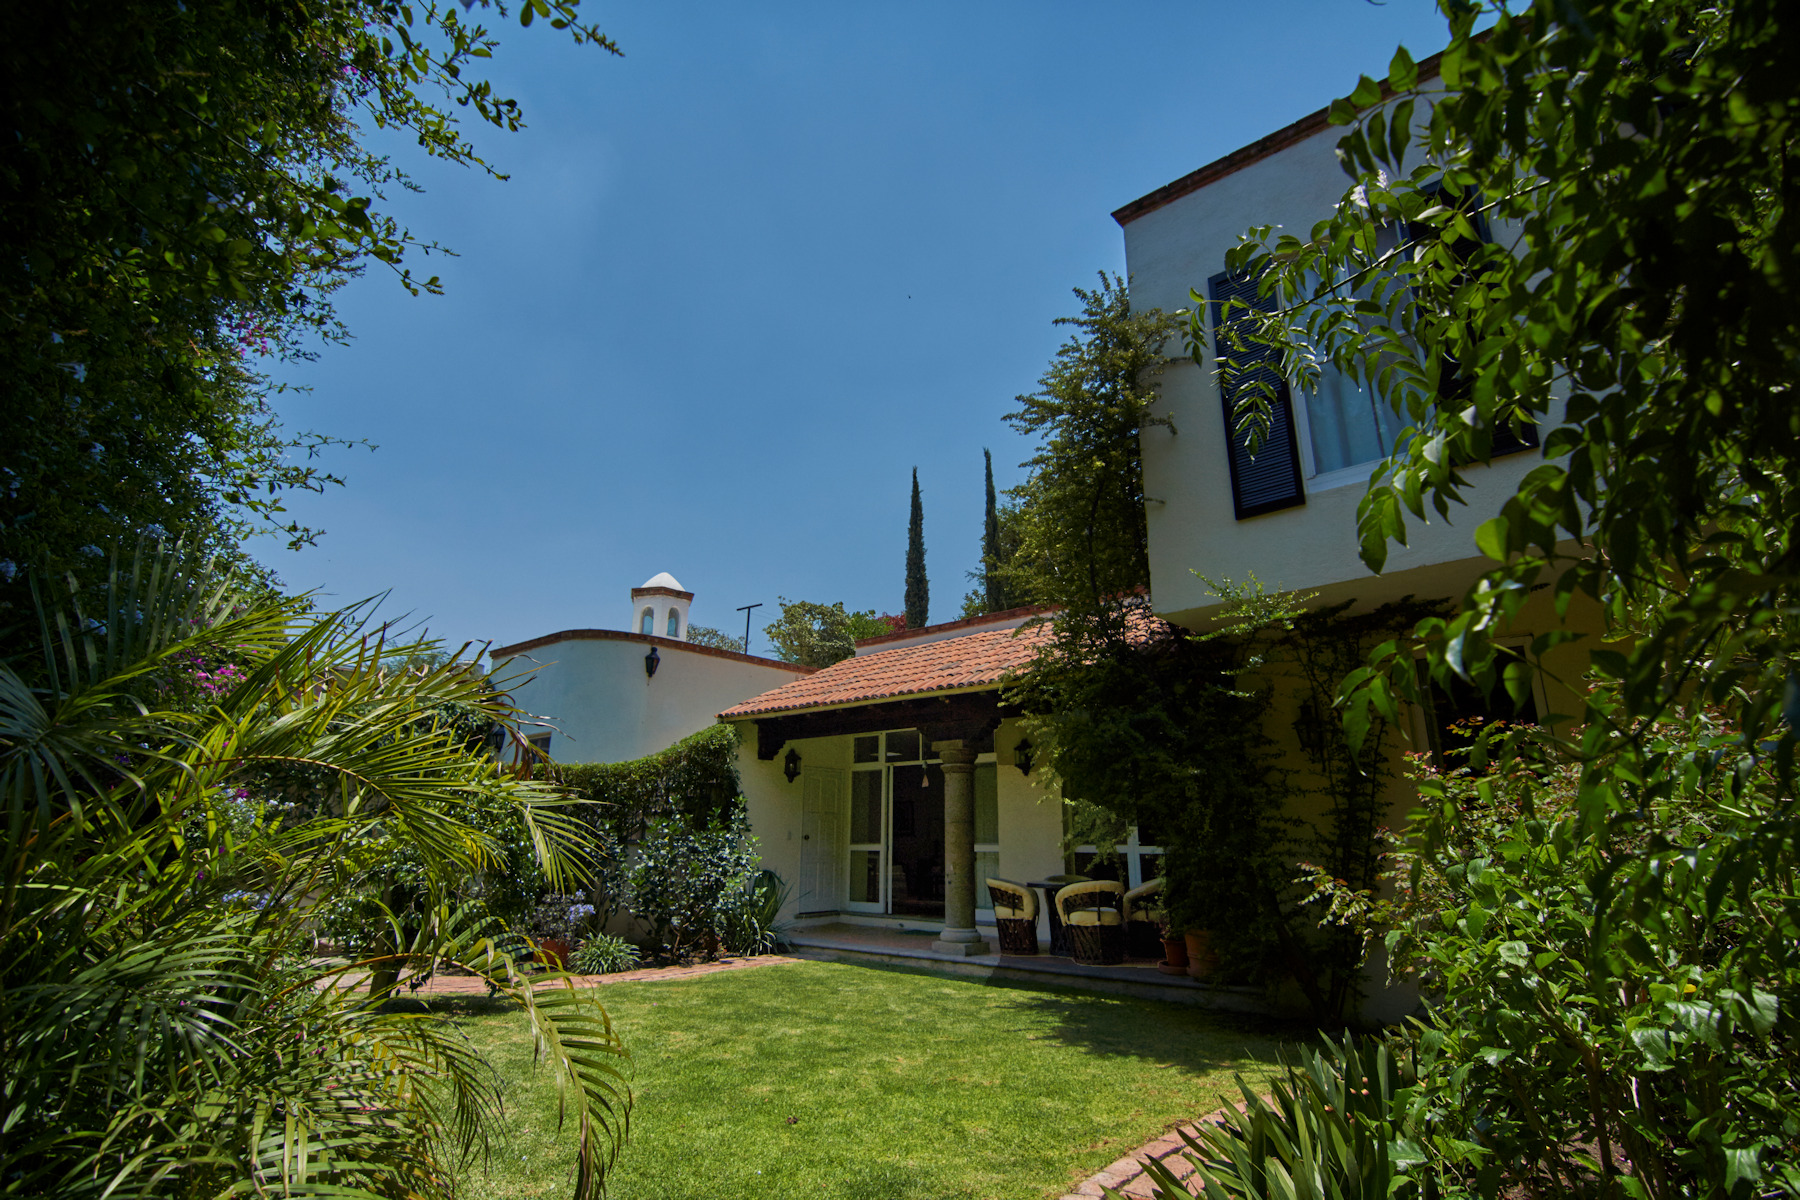 Single Family Home for Sale at Casa 20 de Enero San Antonio, San Miguel De Allende, Guanajuato Mexico